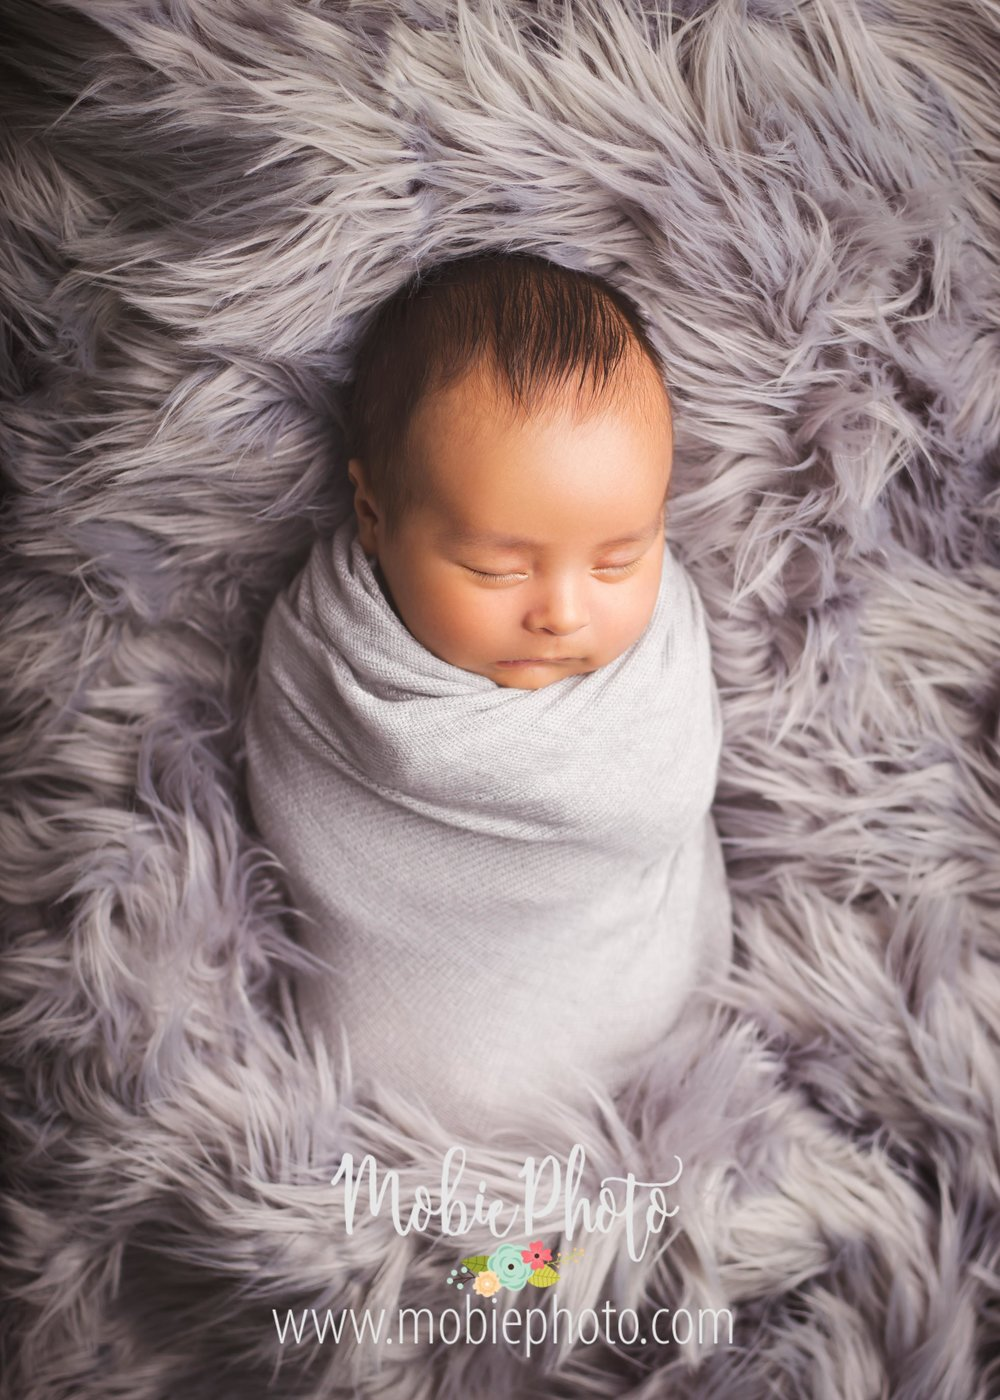 Six Week Old Newborn Shoot - Mobie Photo - Utah Newborn Photography